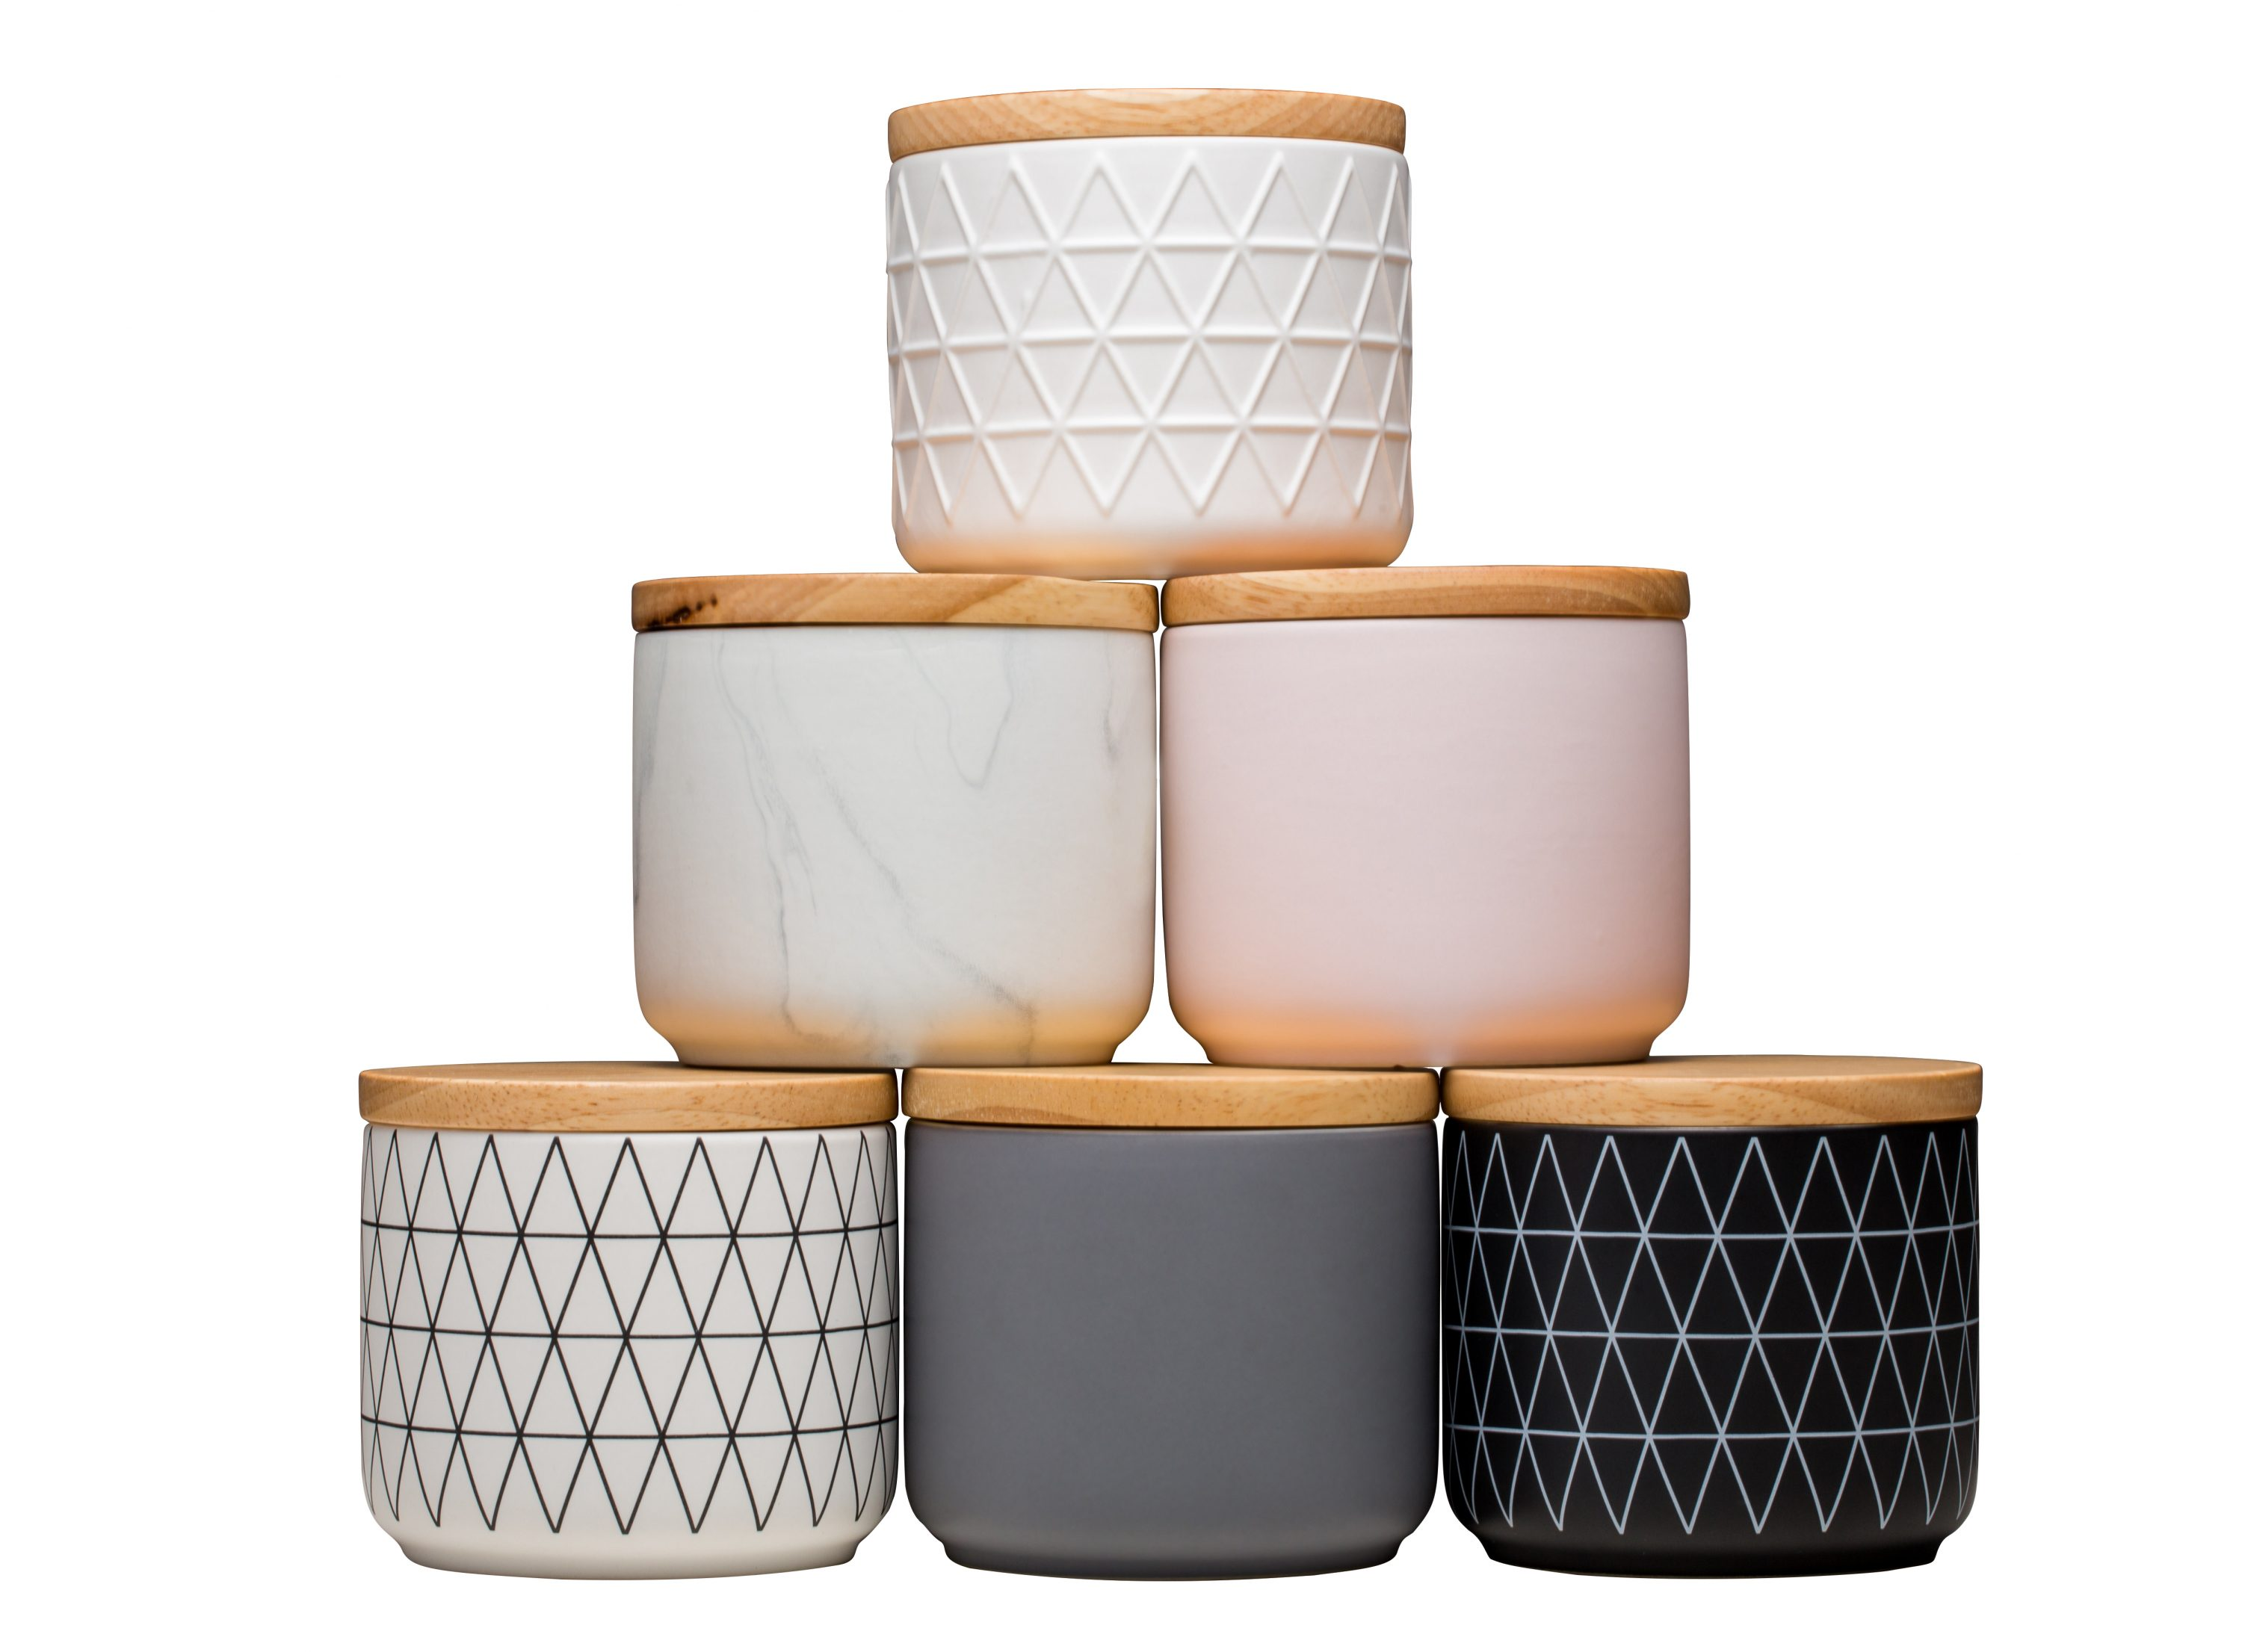 Kmart S Latest Homewares Collection Even Better Than The Last The Interiors Addict